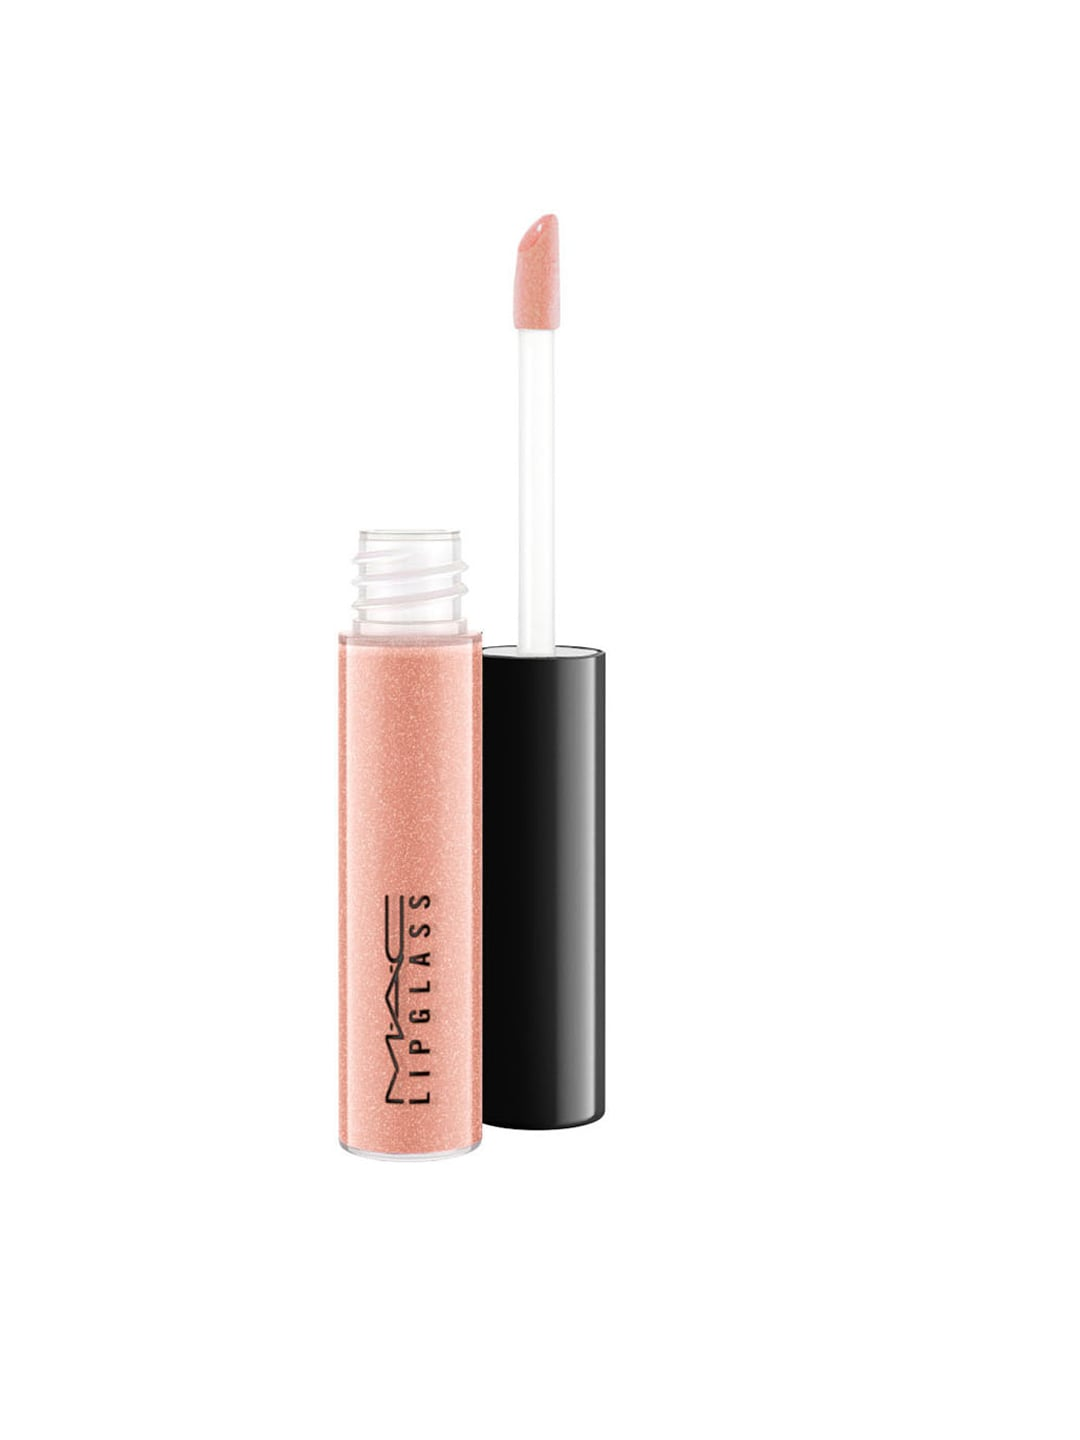 M.A.C Nude Sized To Go Lipglass image